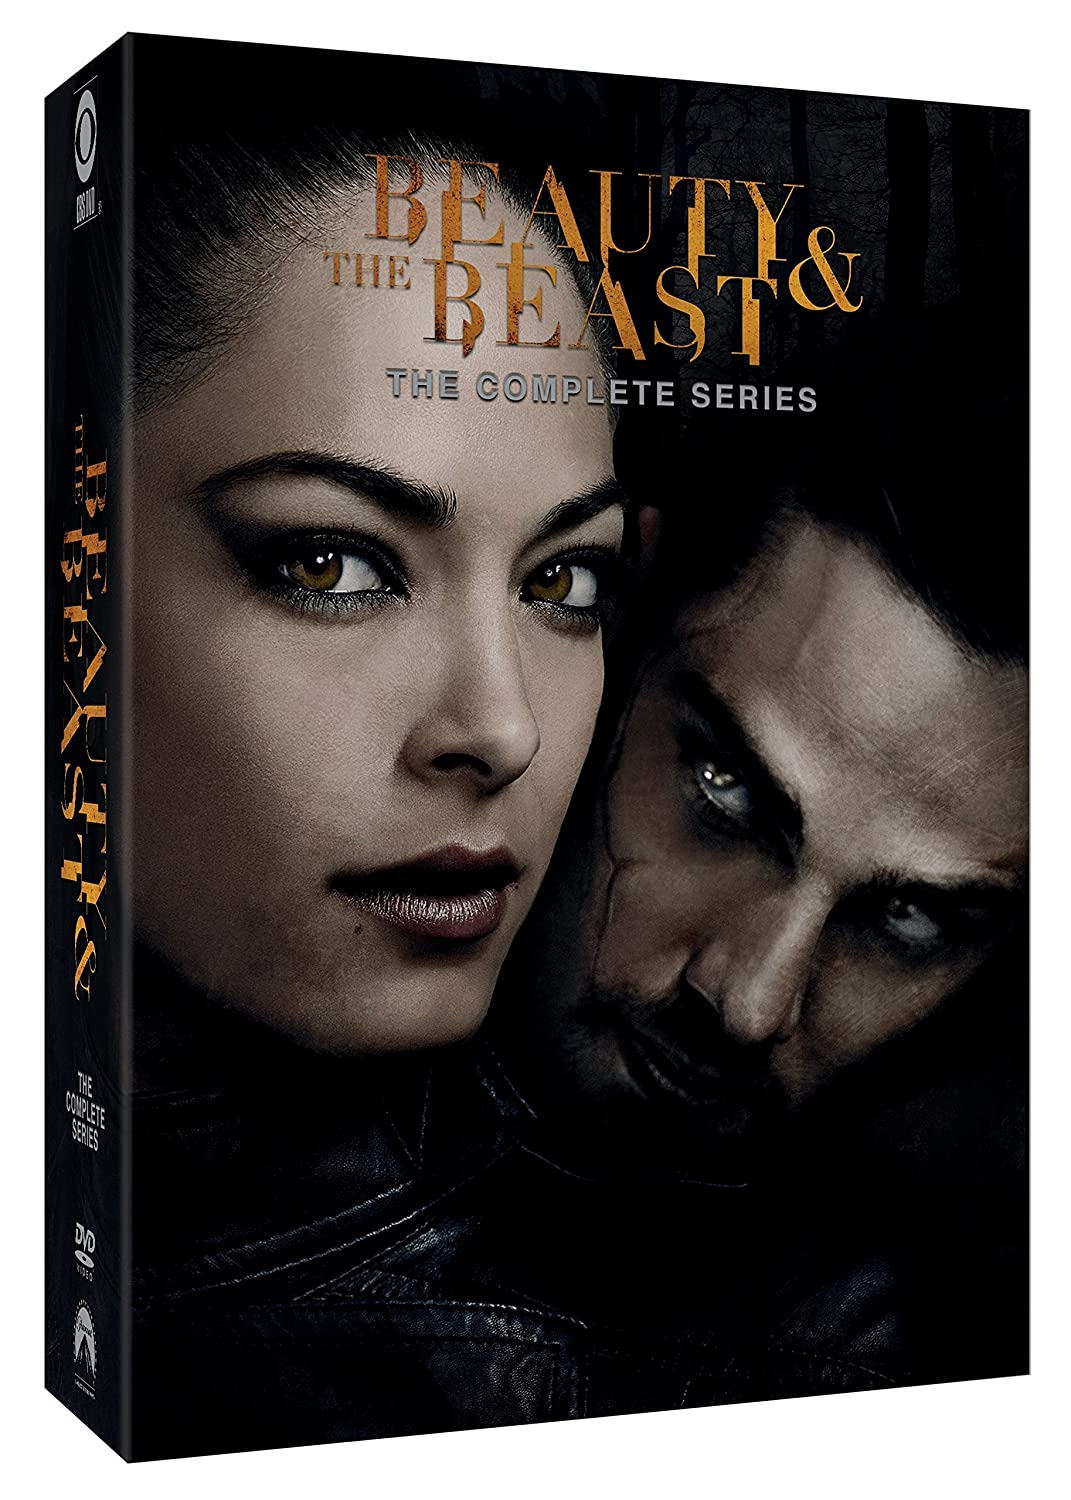 Beauty & The Beast: The Complete Series